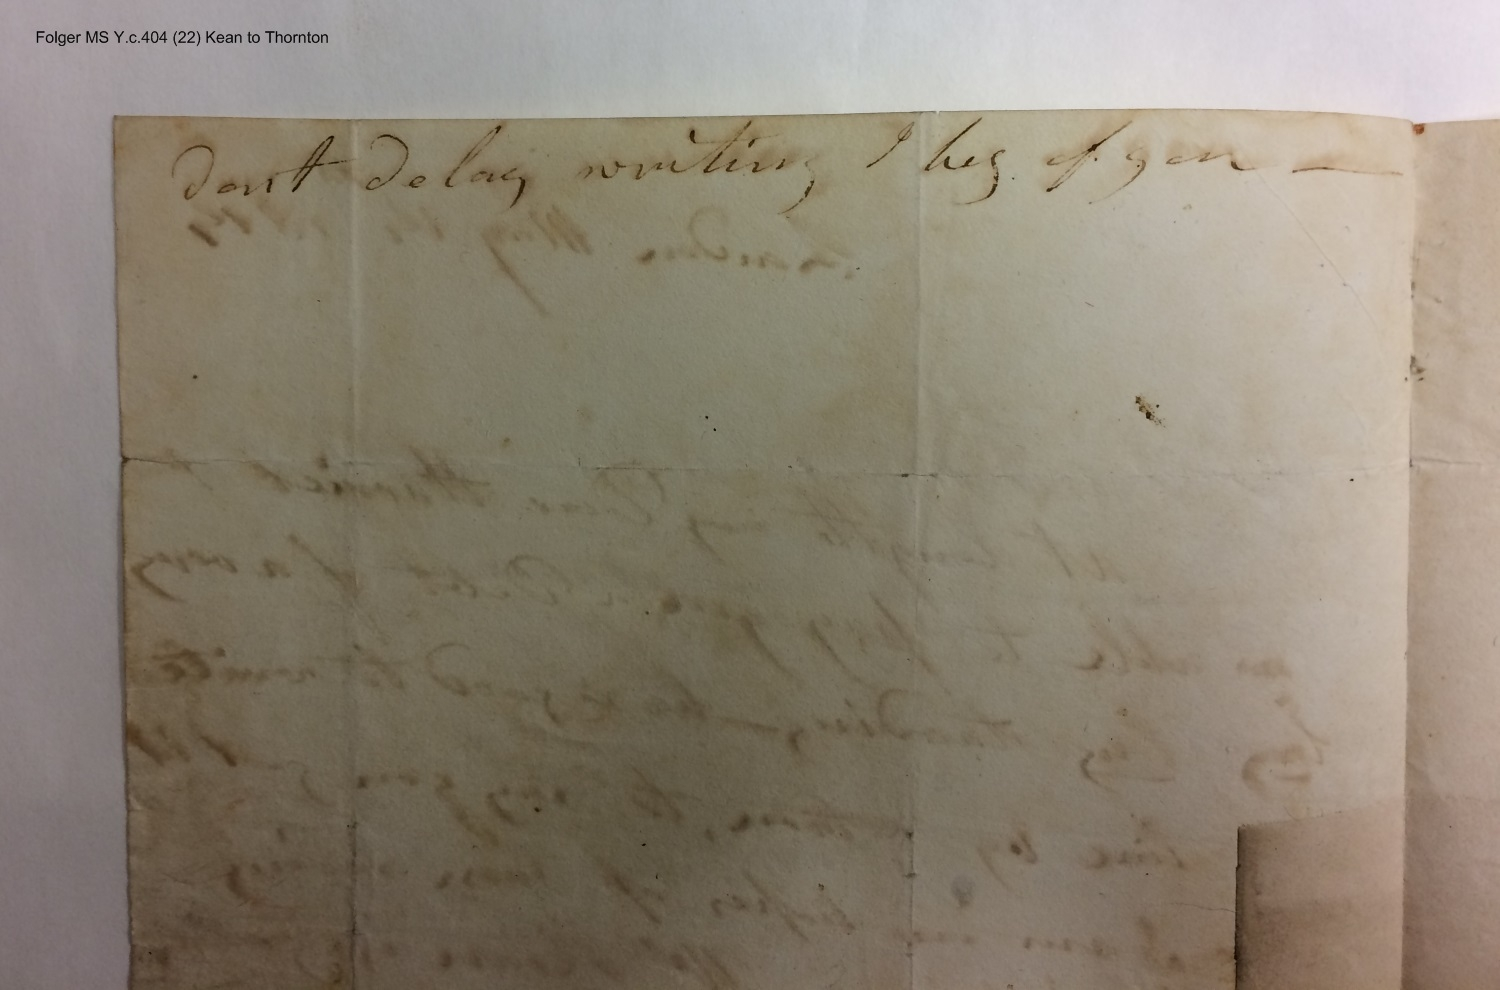 Autograph letters signed from Mary (Chambers) Kean to various recipients [manuscript], 1814-1842.